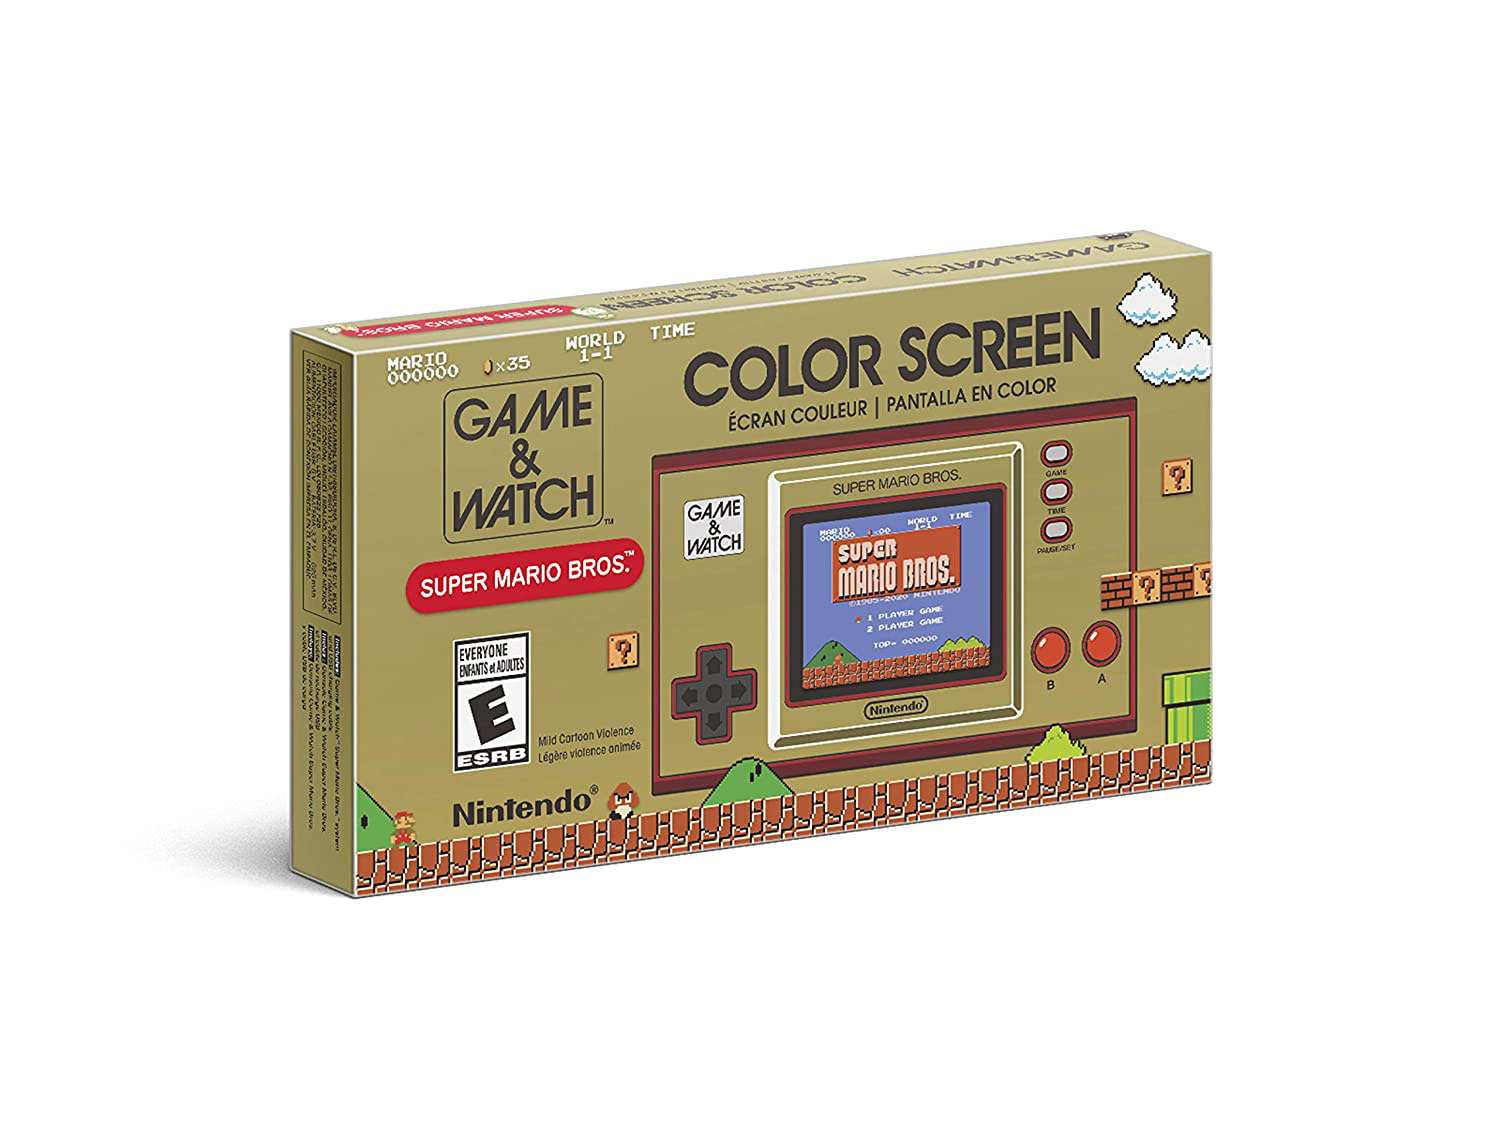 Gifts for men, gift ideas for him - For the Nostalgic Guy: Nintendo GAME & WATCH: SUPER MARIO BROS.